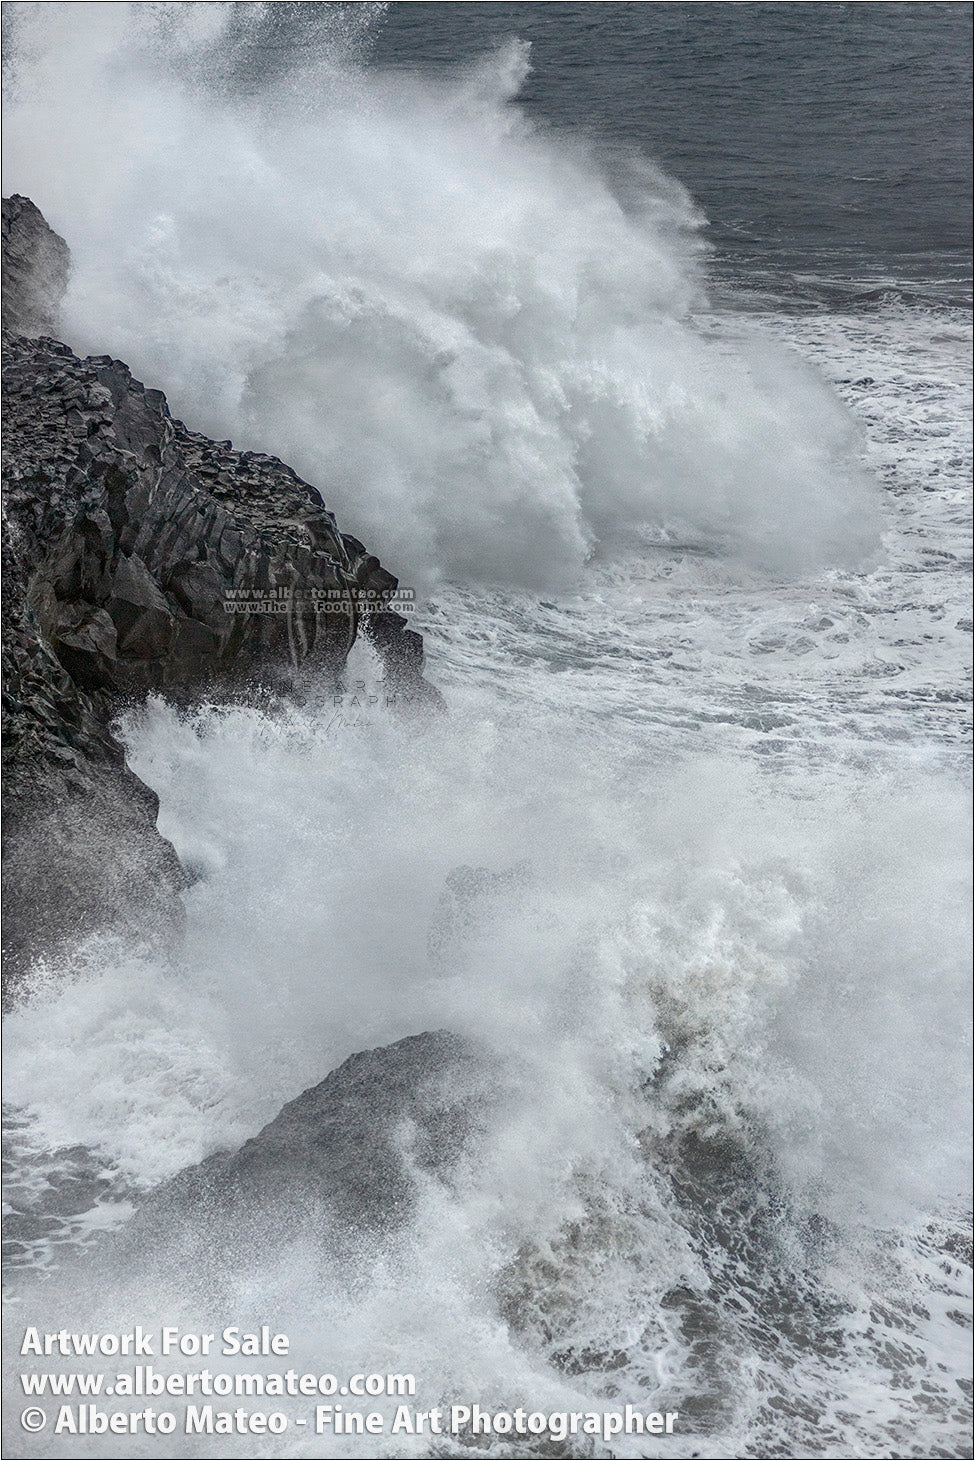 Sea Gale, Breaking Waves, Dyorhaley, Iceland. 2/5